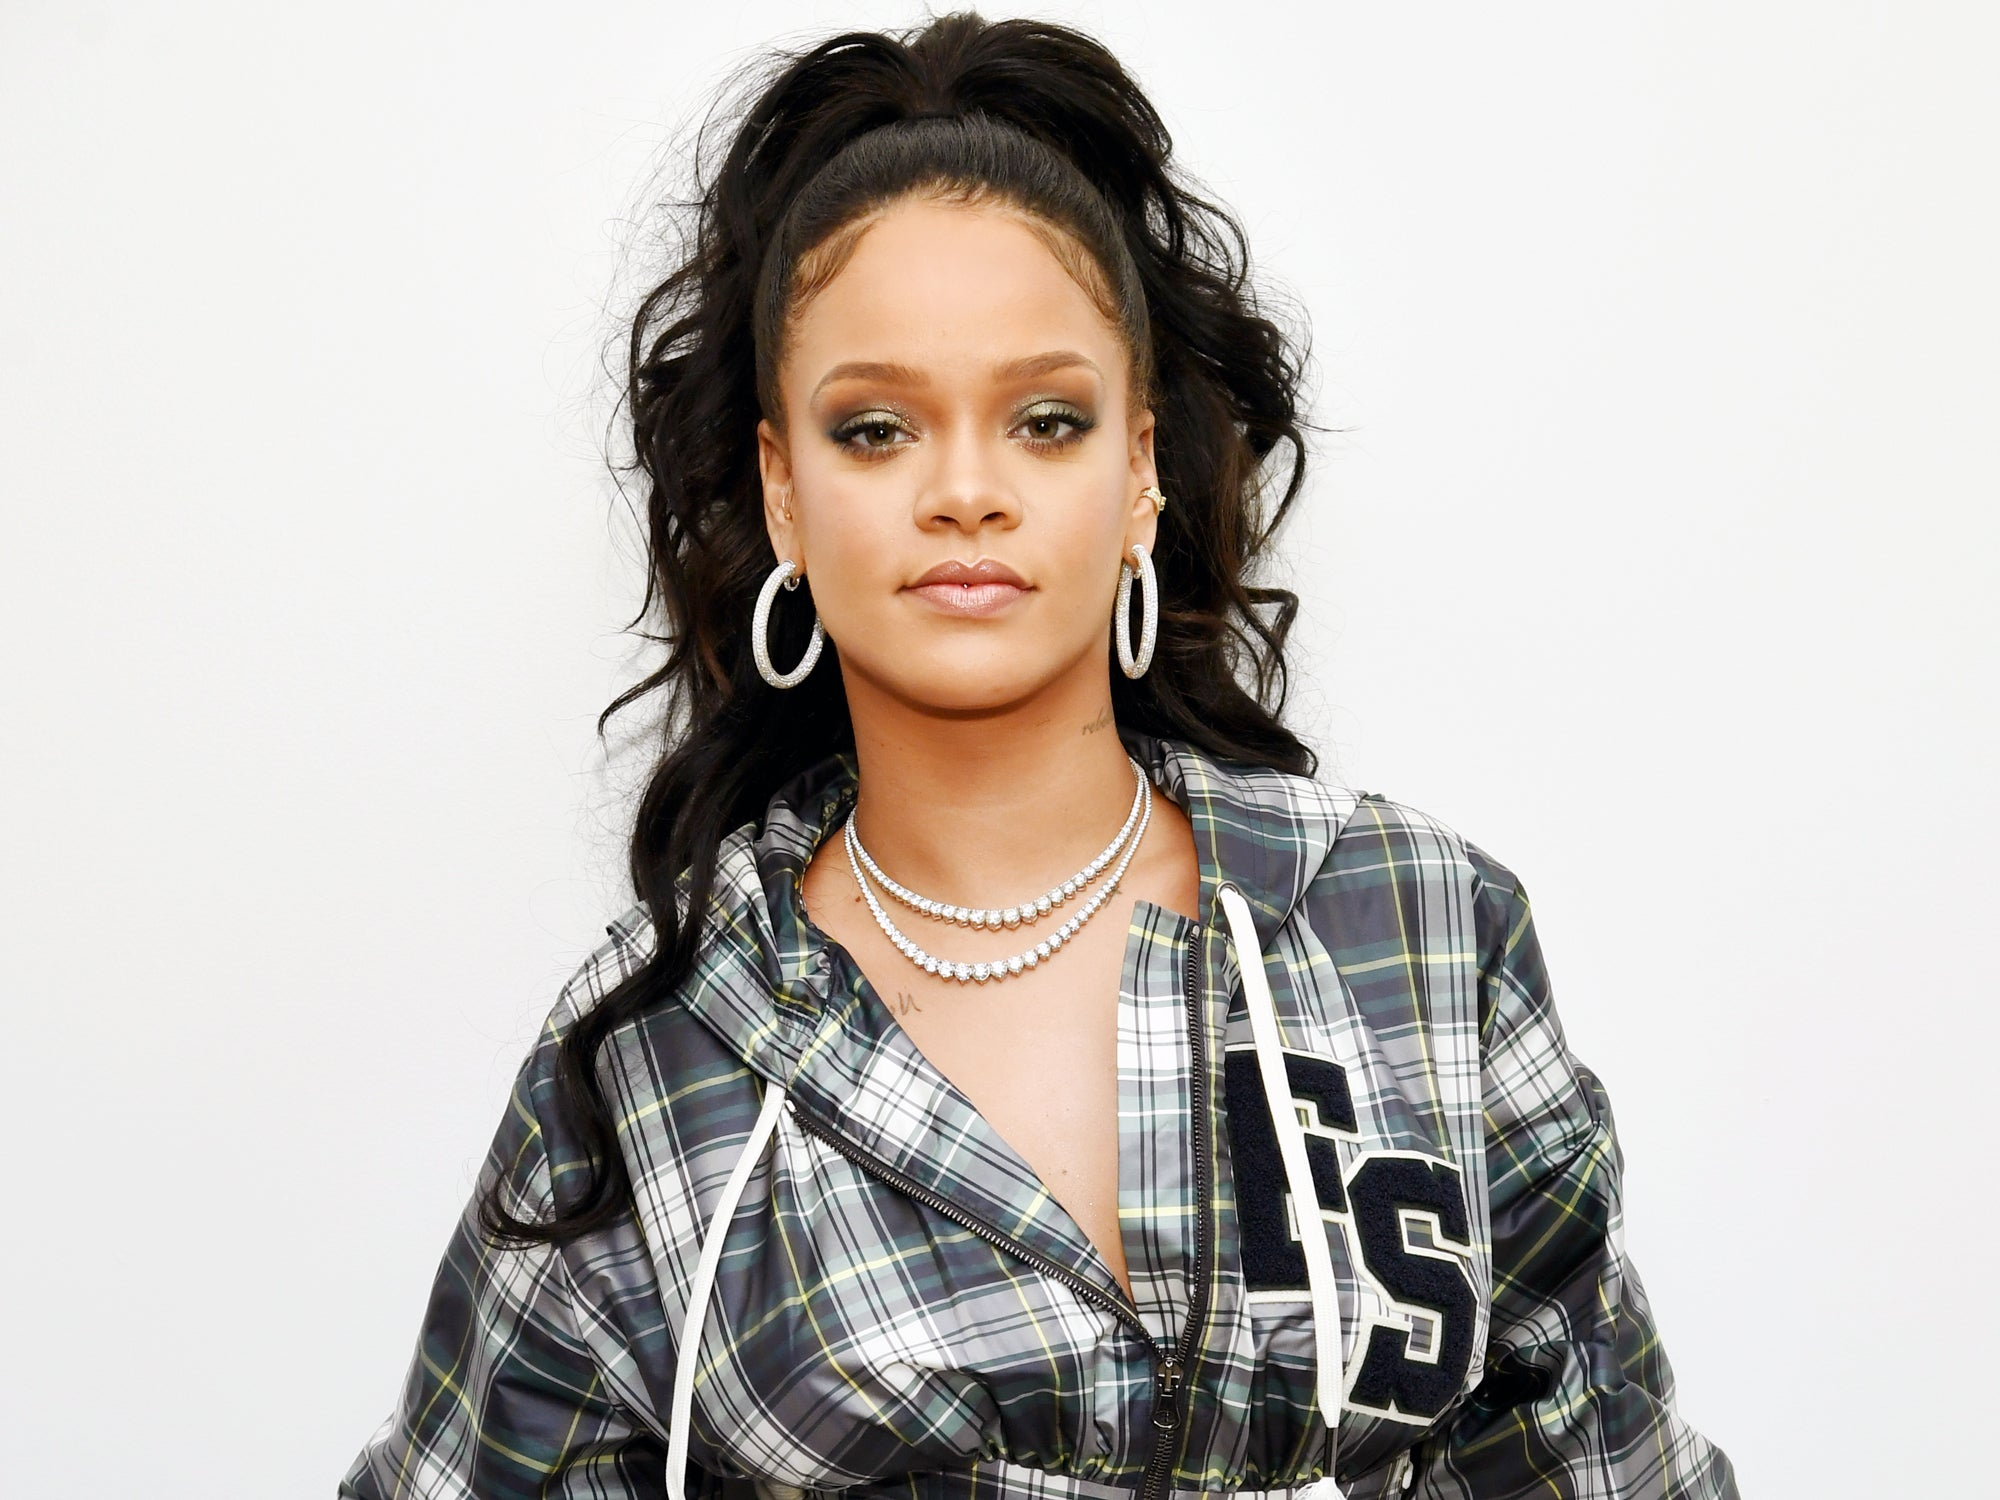 Rihanna's Childhood StreetIn Barbados Will Be Honored With Her Name